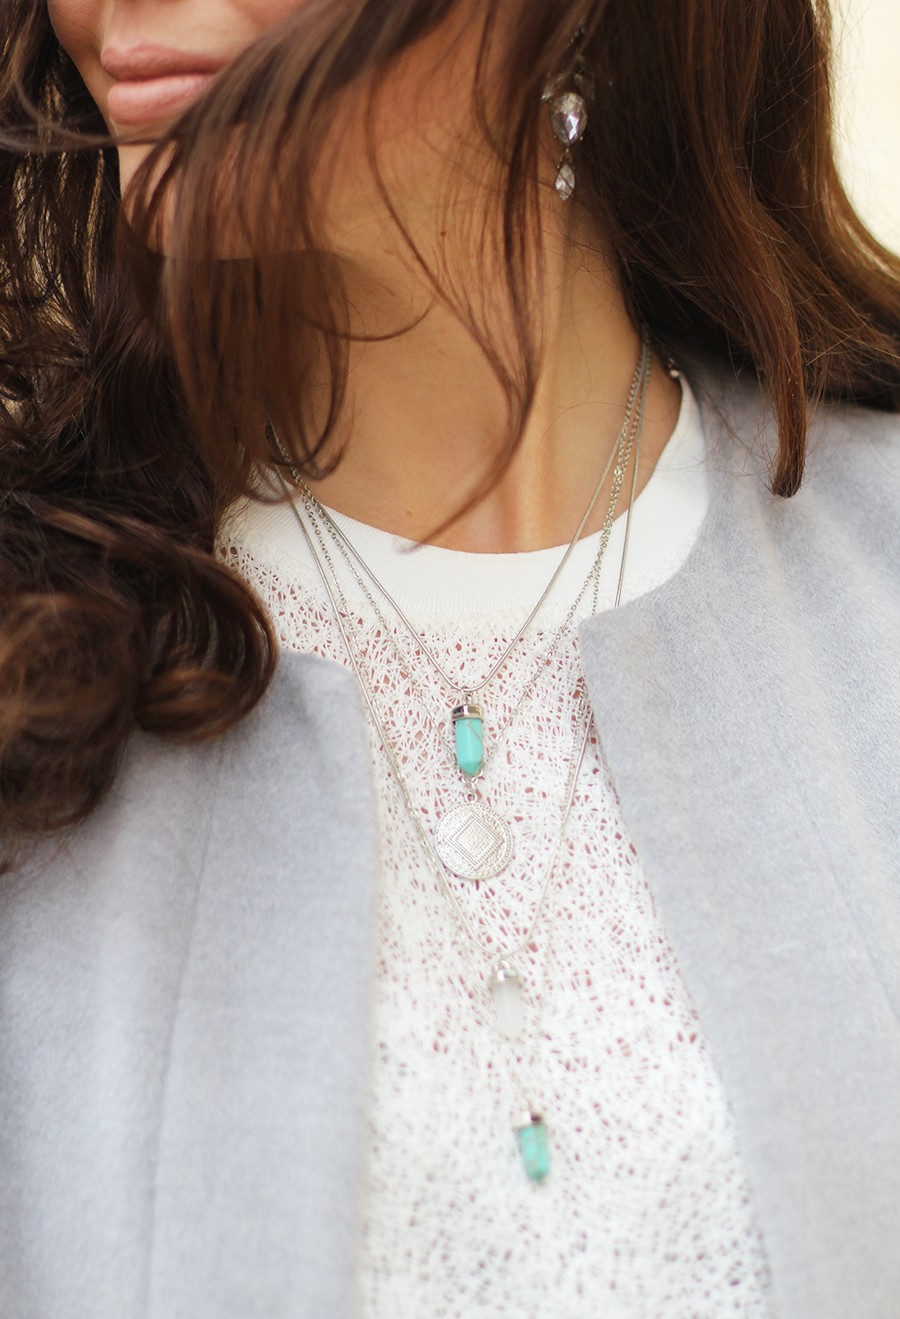 silver-layered-necklace